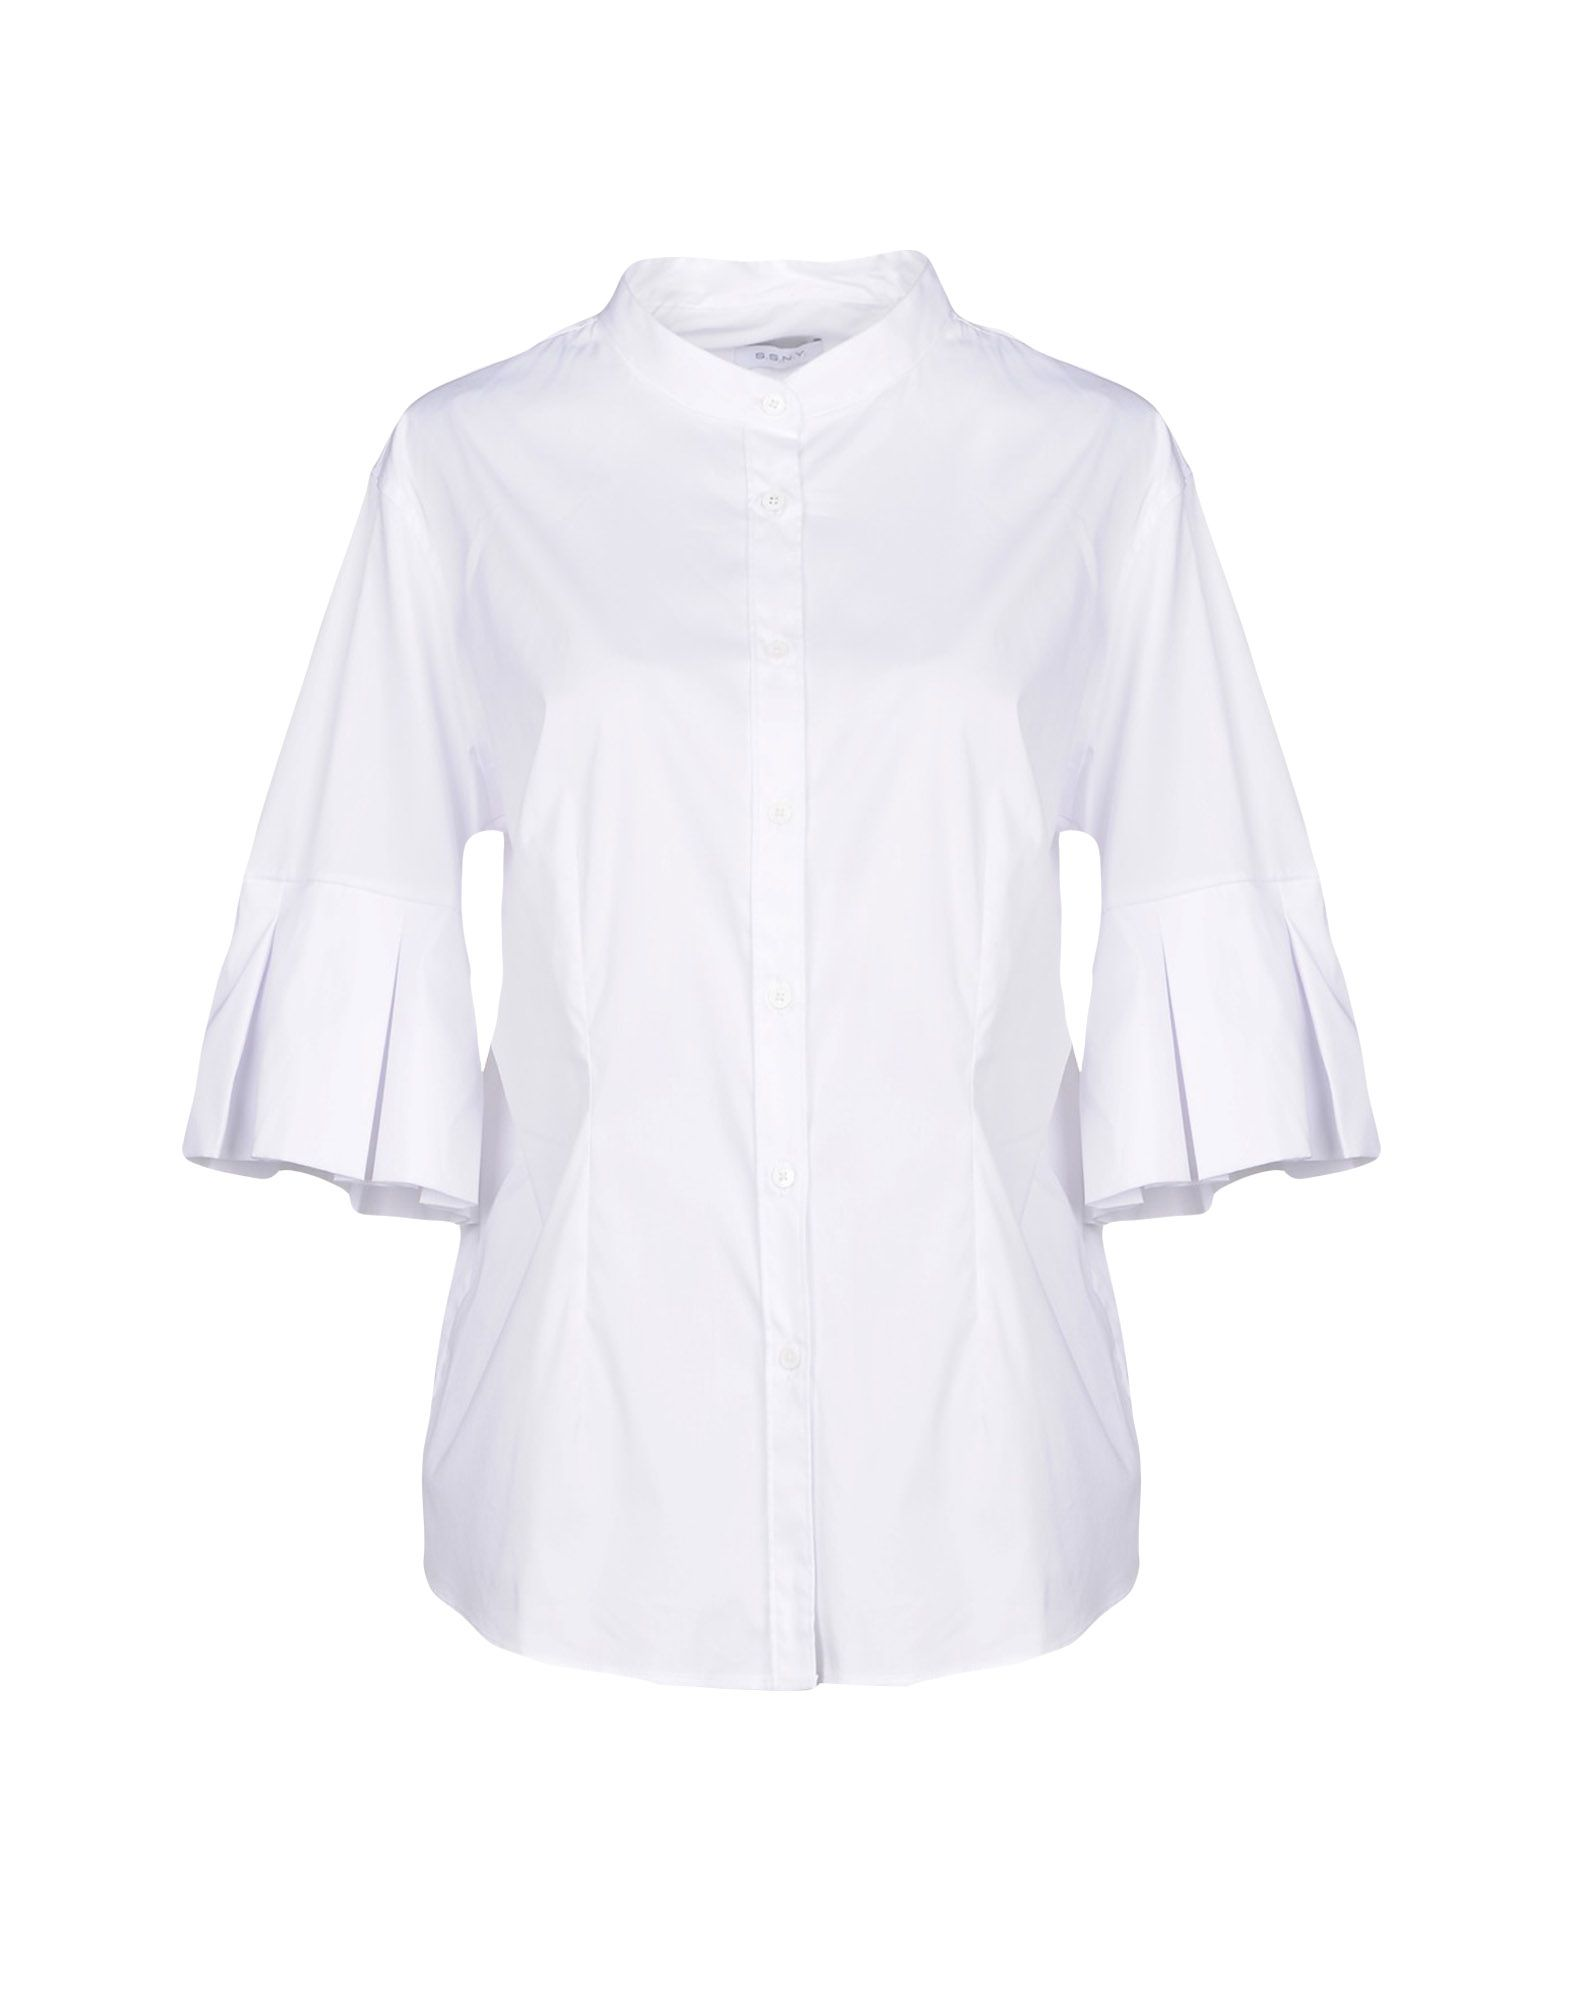 SHIRTS - Shirts S.S.N.Y. Really Online Deals Sale Online Free Shipping Official Free Shipping Affordable Sale Shop hg5gr